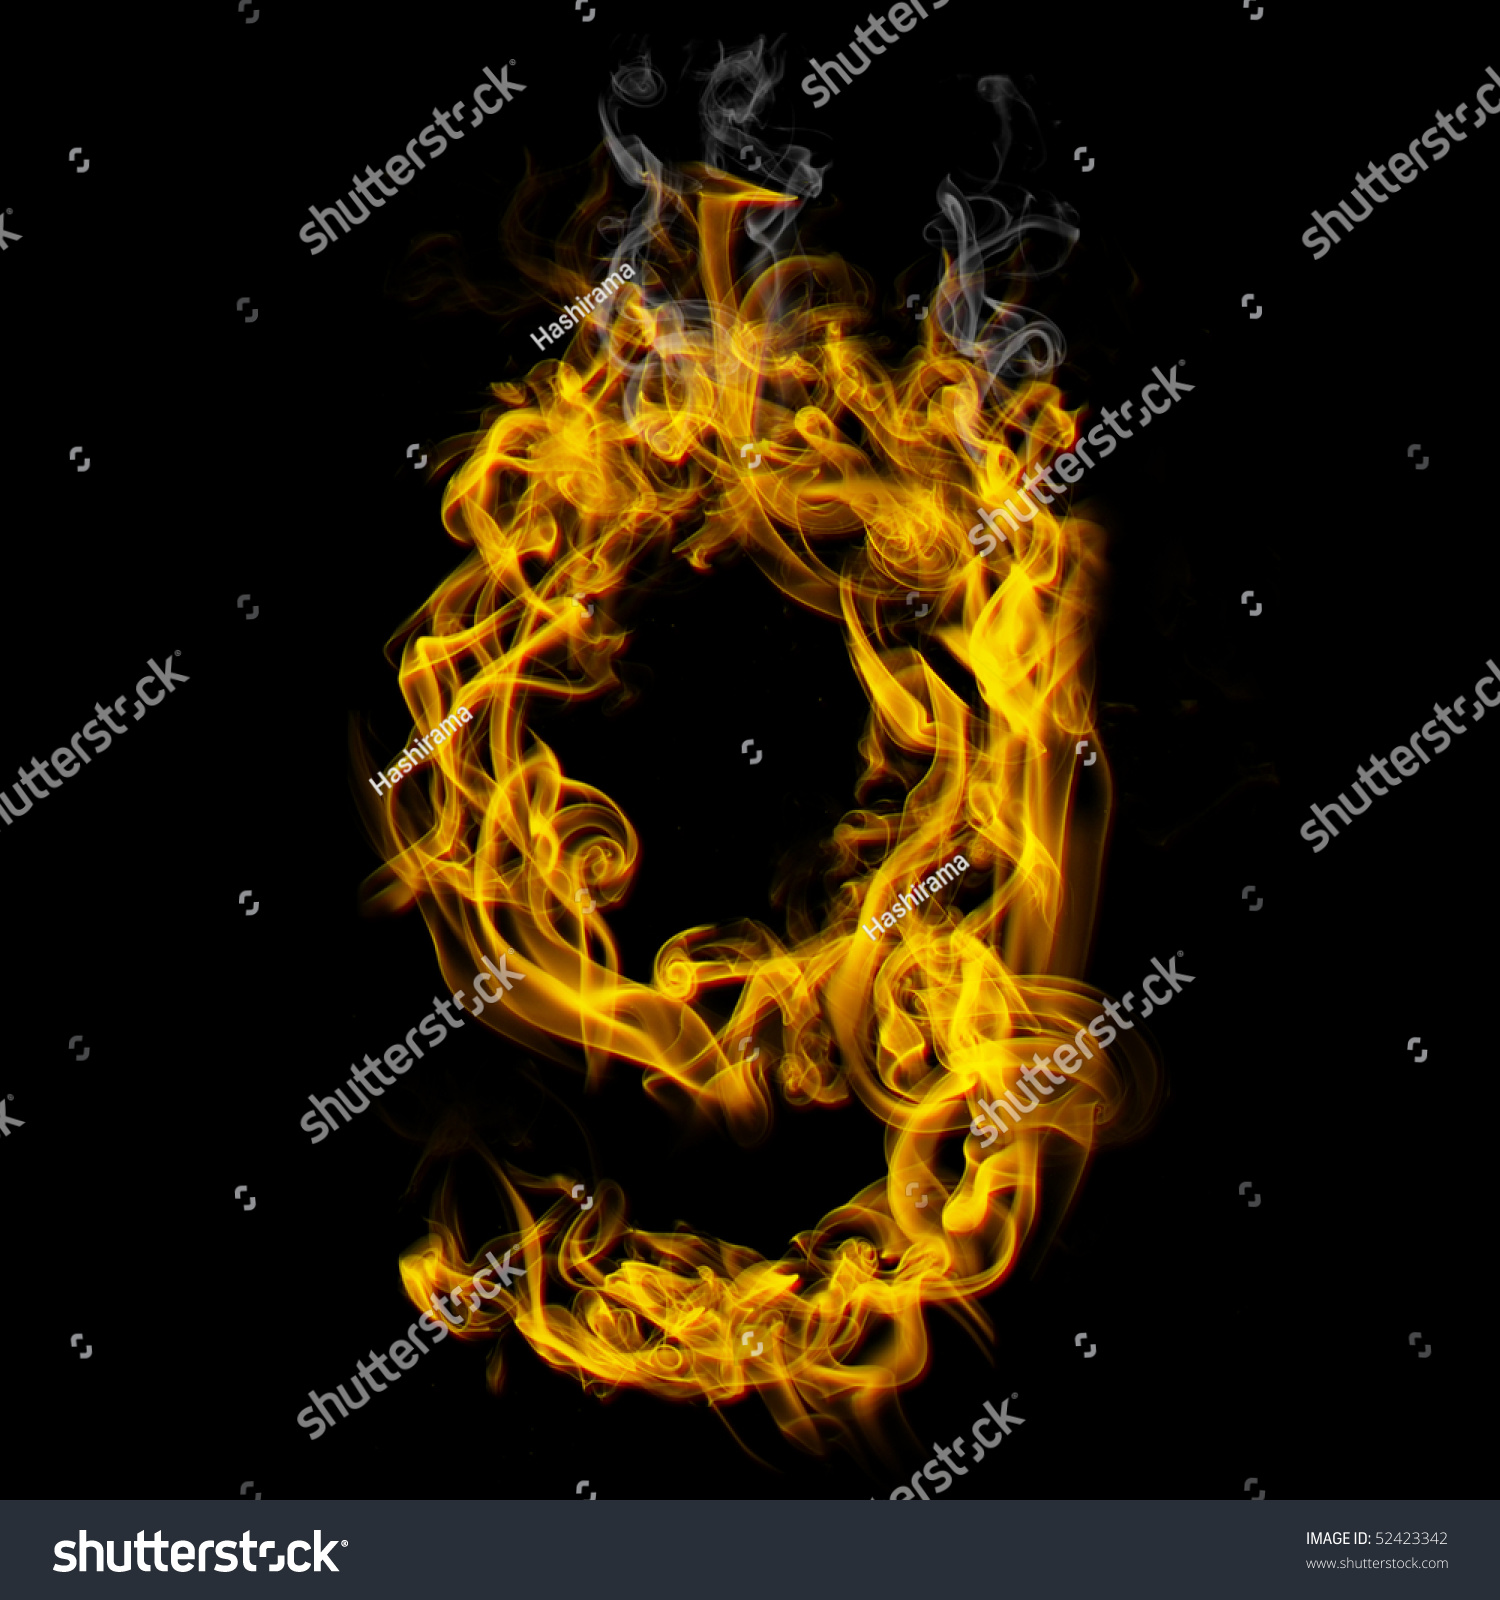 Letter g in fire for how to create a family tree high level process flow burning letter g check all fire stock illustration 52423342 stock photo burning letter g check all fire letters in my portfolio 52423342 burning letter g thecheapjerseys Image collections